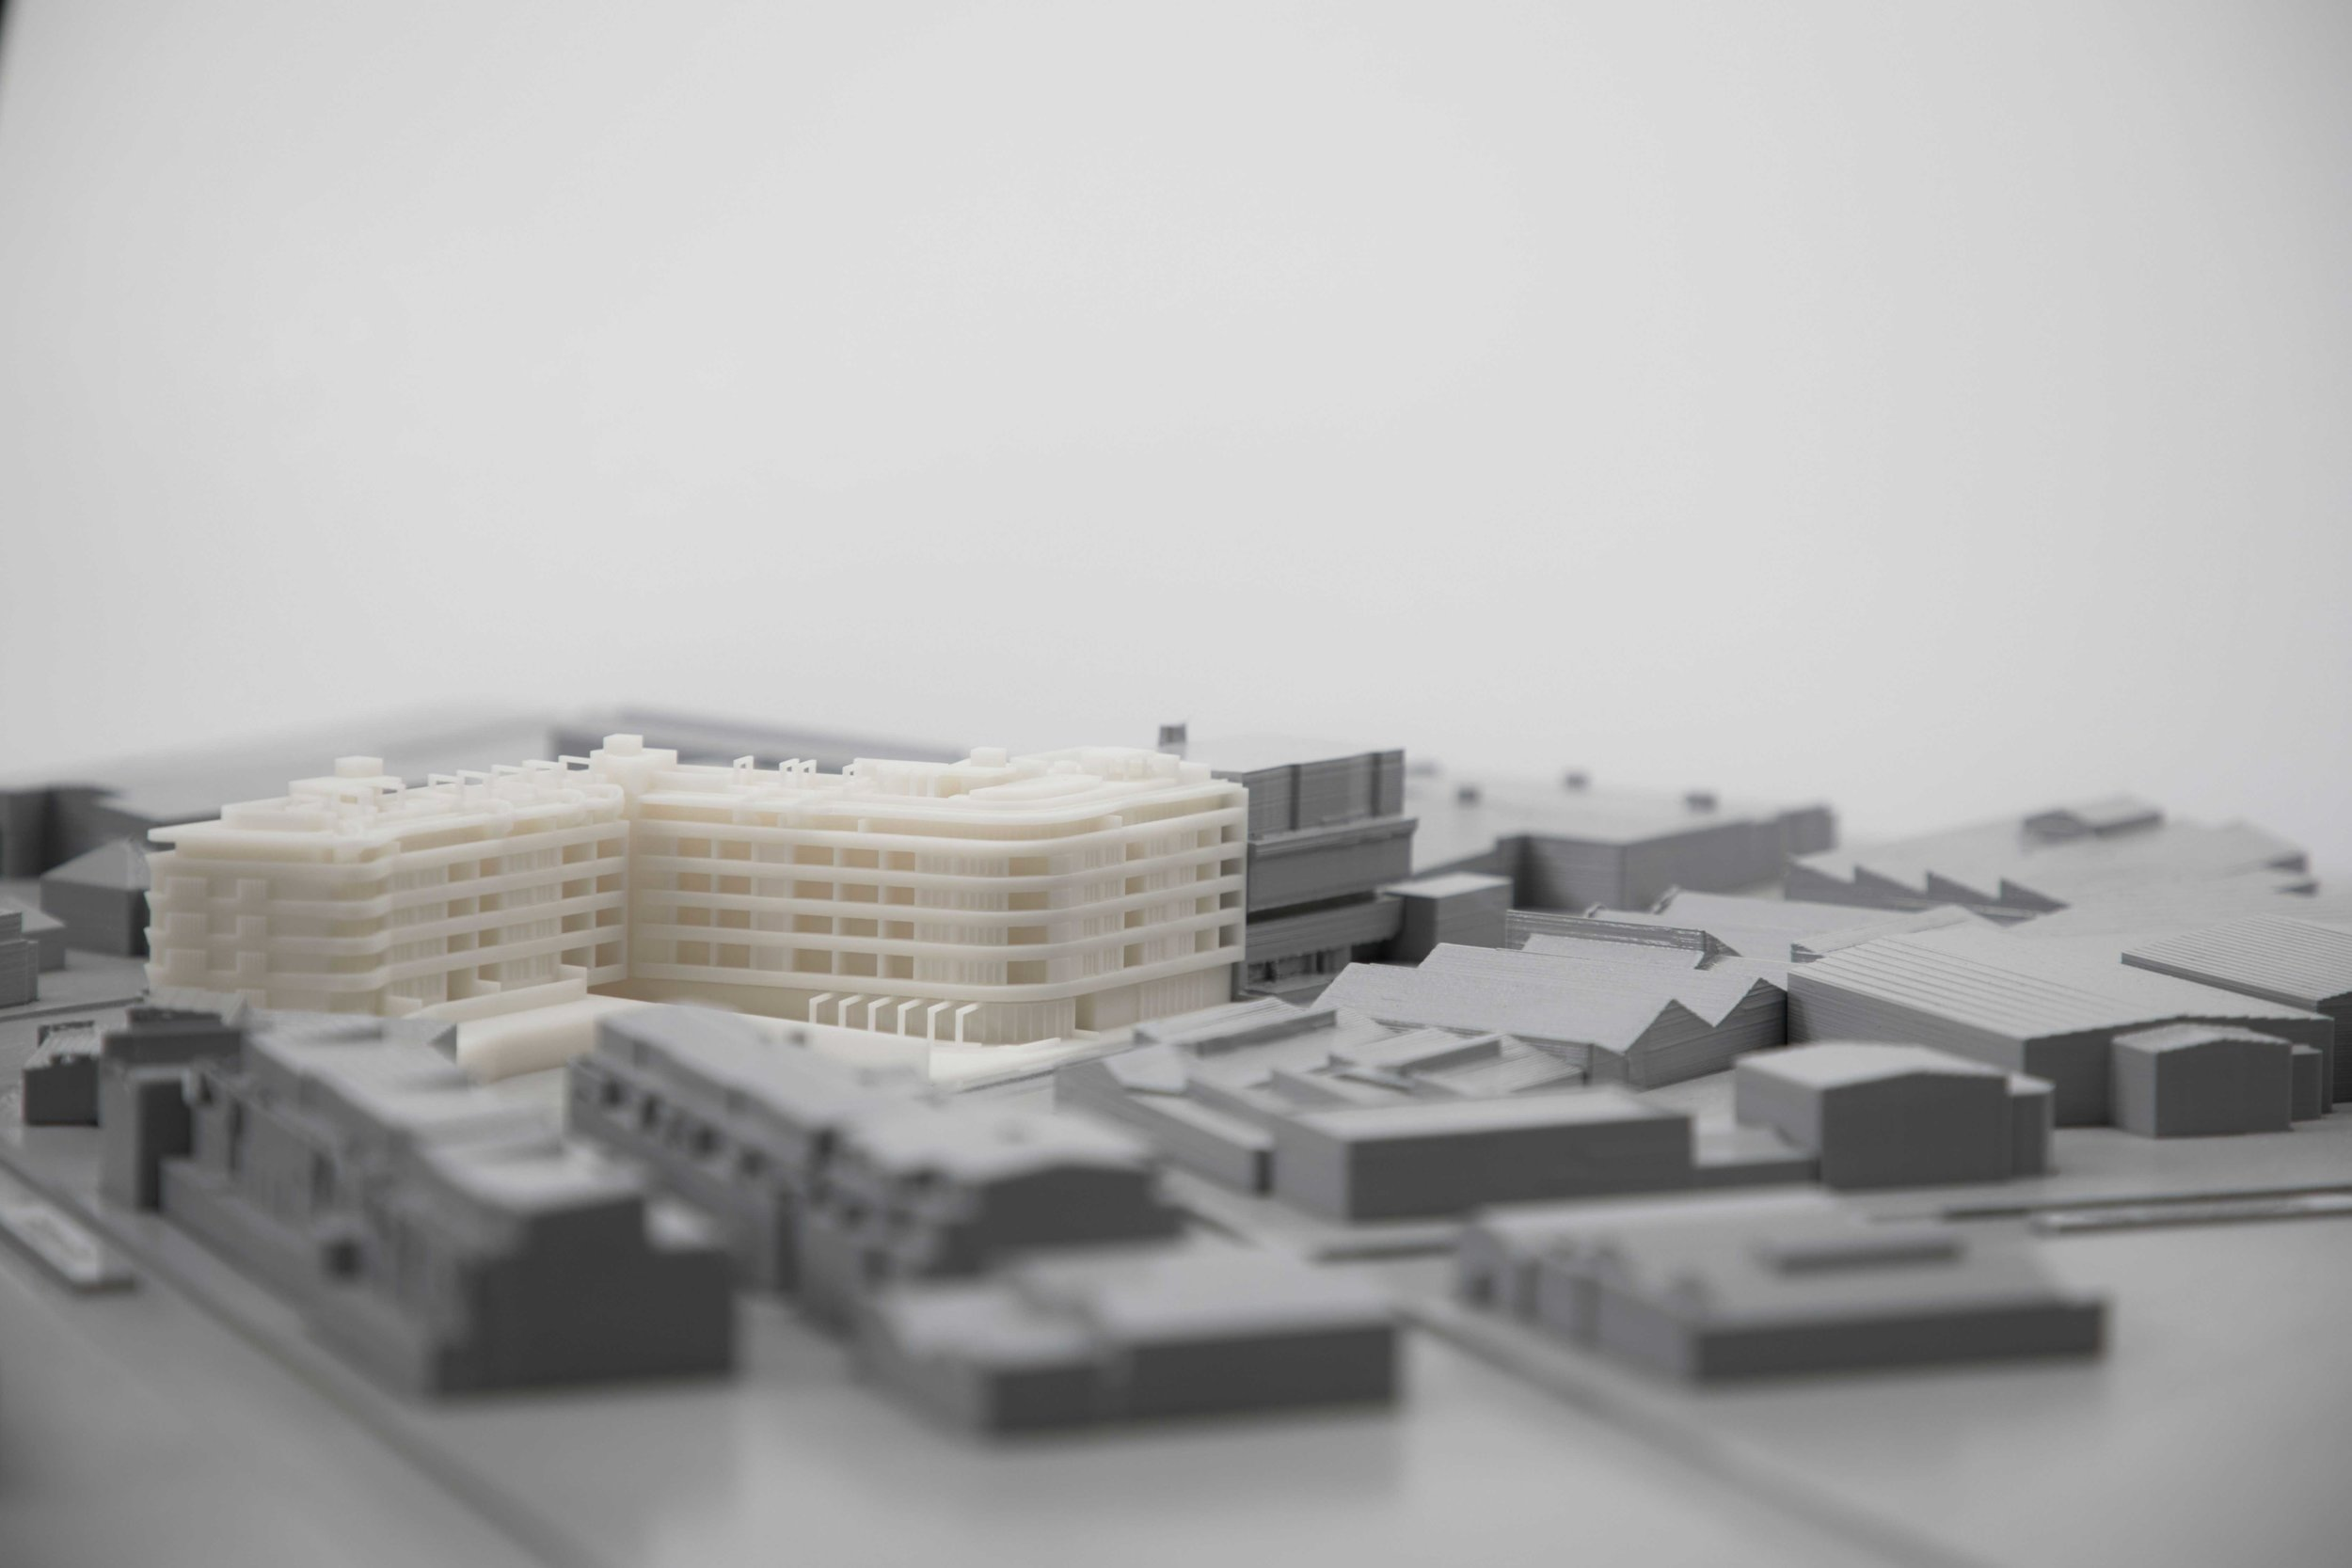 Make_models_da_Sydney_architecture_model.jpg